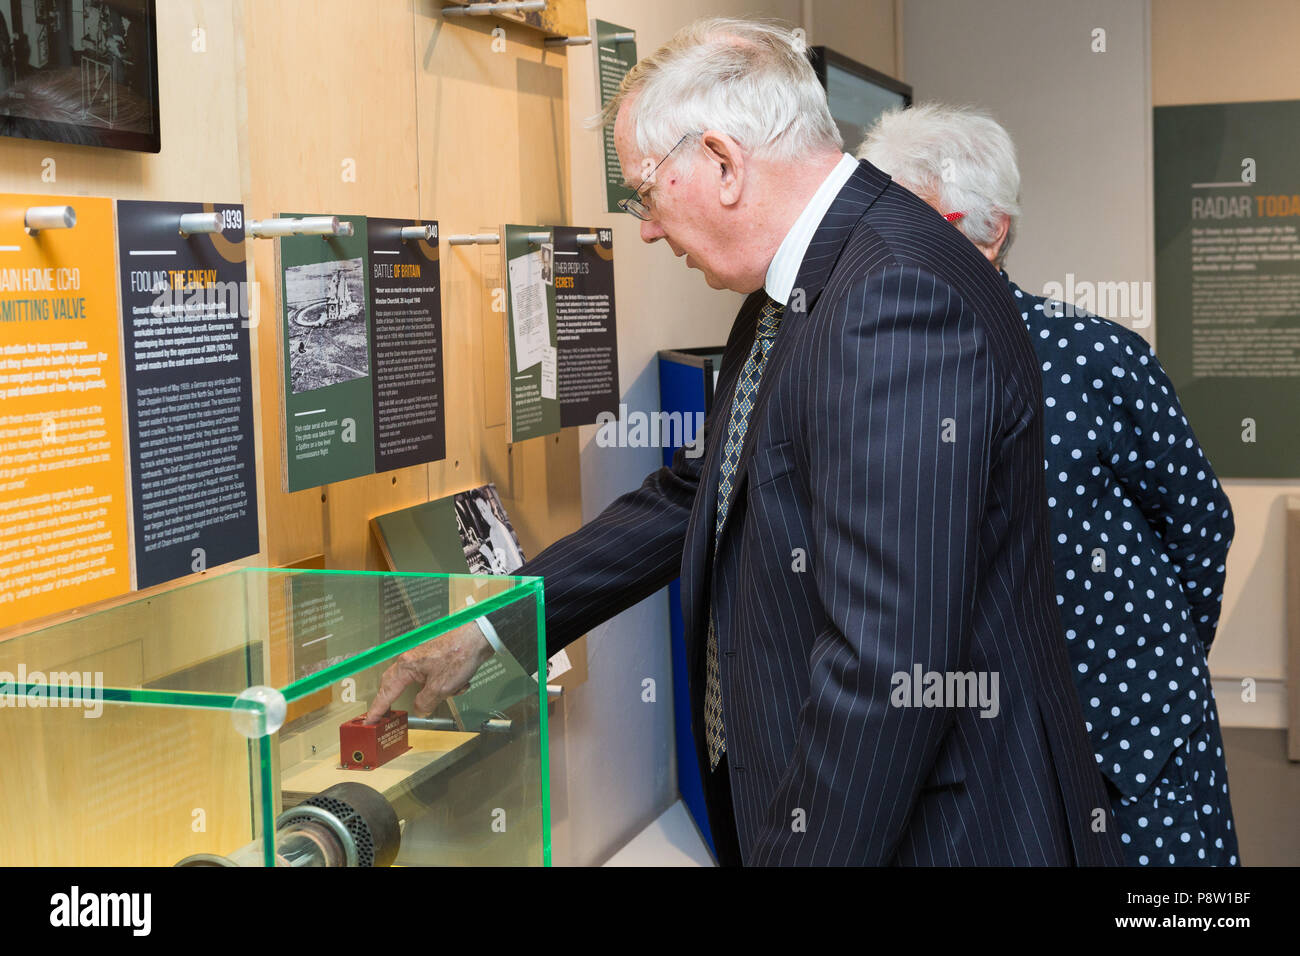 Bawdsey, UK. 13th July 2018. Just testing...HRH The Duke of Gloucester presses the two buttons which would woud have been used be used to destroy the specialist radar technology, as he opened Bawdsey Radar Transmitter Block. Credit: Keith mindham/Alamy Live News - Stock Image